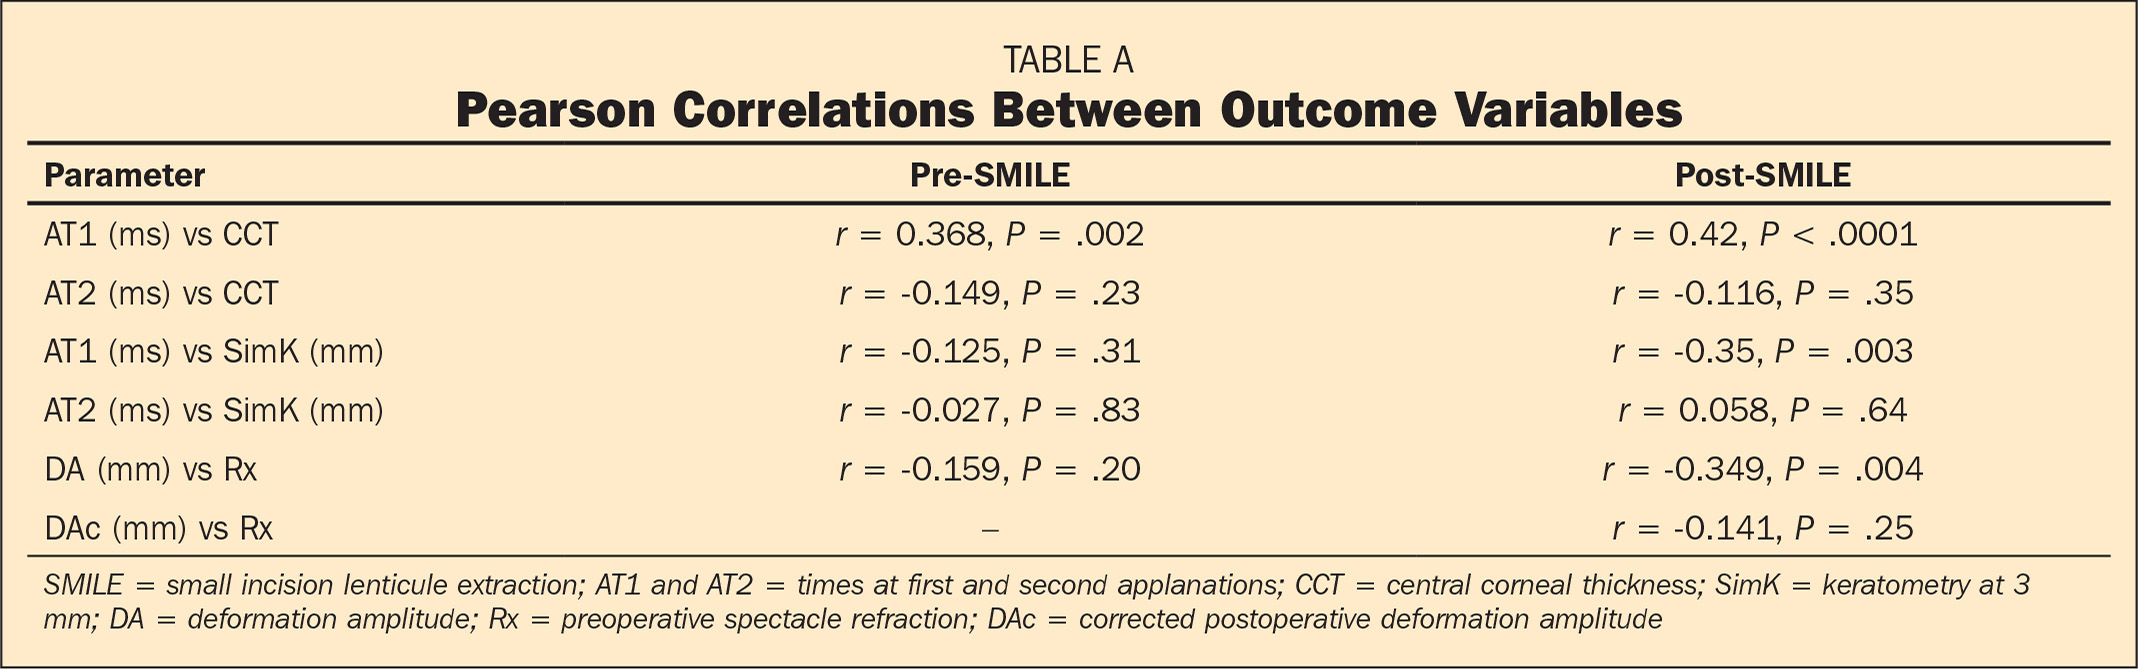 Pearson Correlations Between Outcome Variables